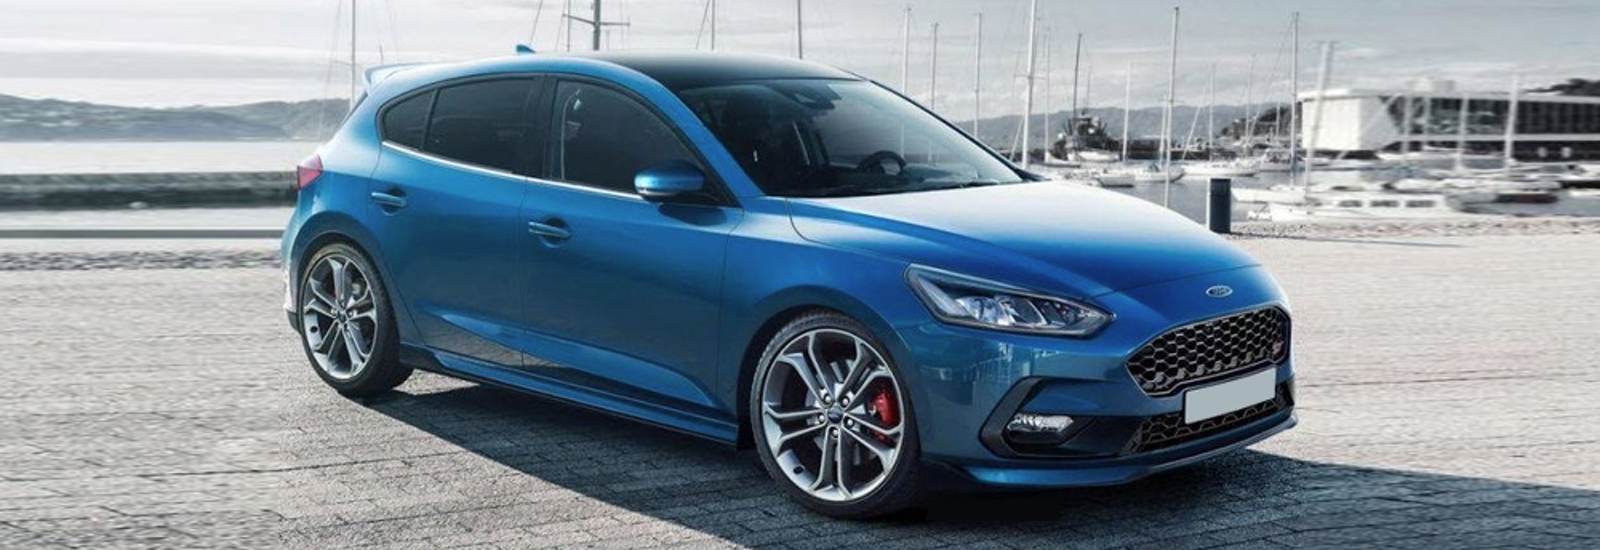 Vw Gti 0 60 >> 2018 Ford Focus price, specs, release date | carwow